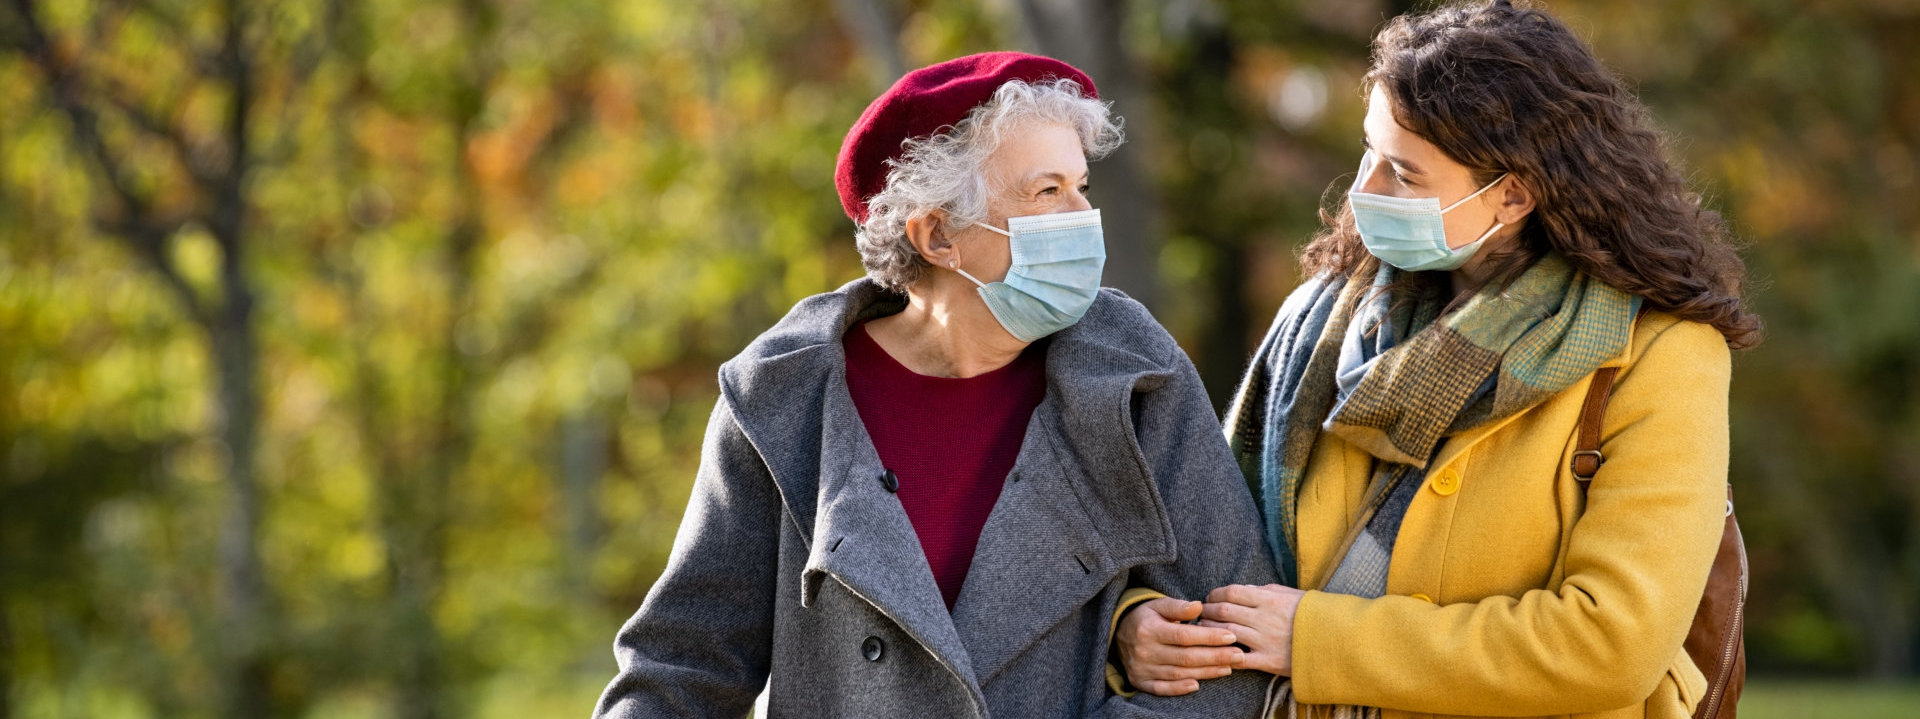 caregiver and old woman walking at the park